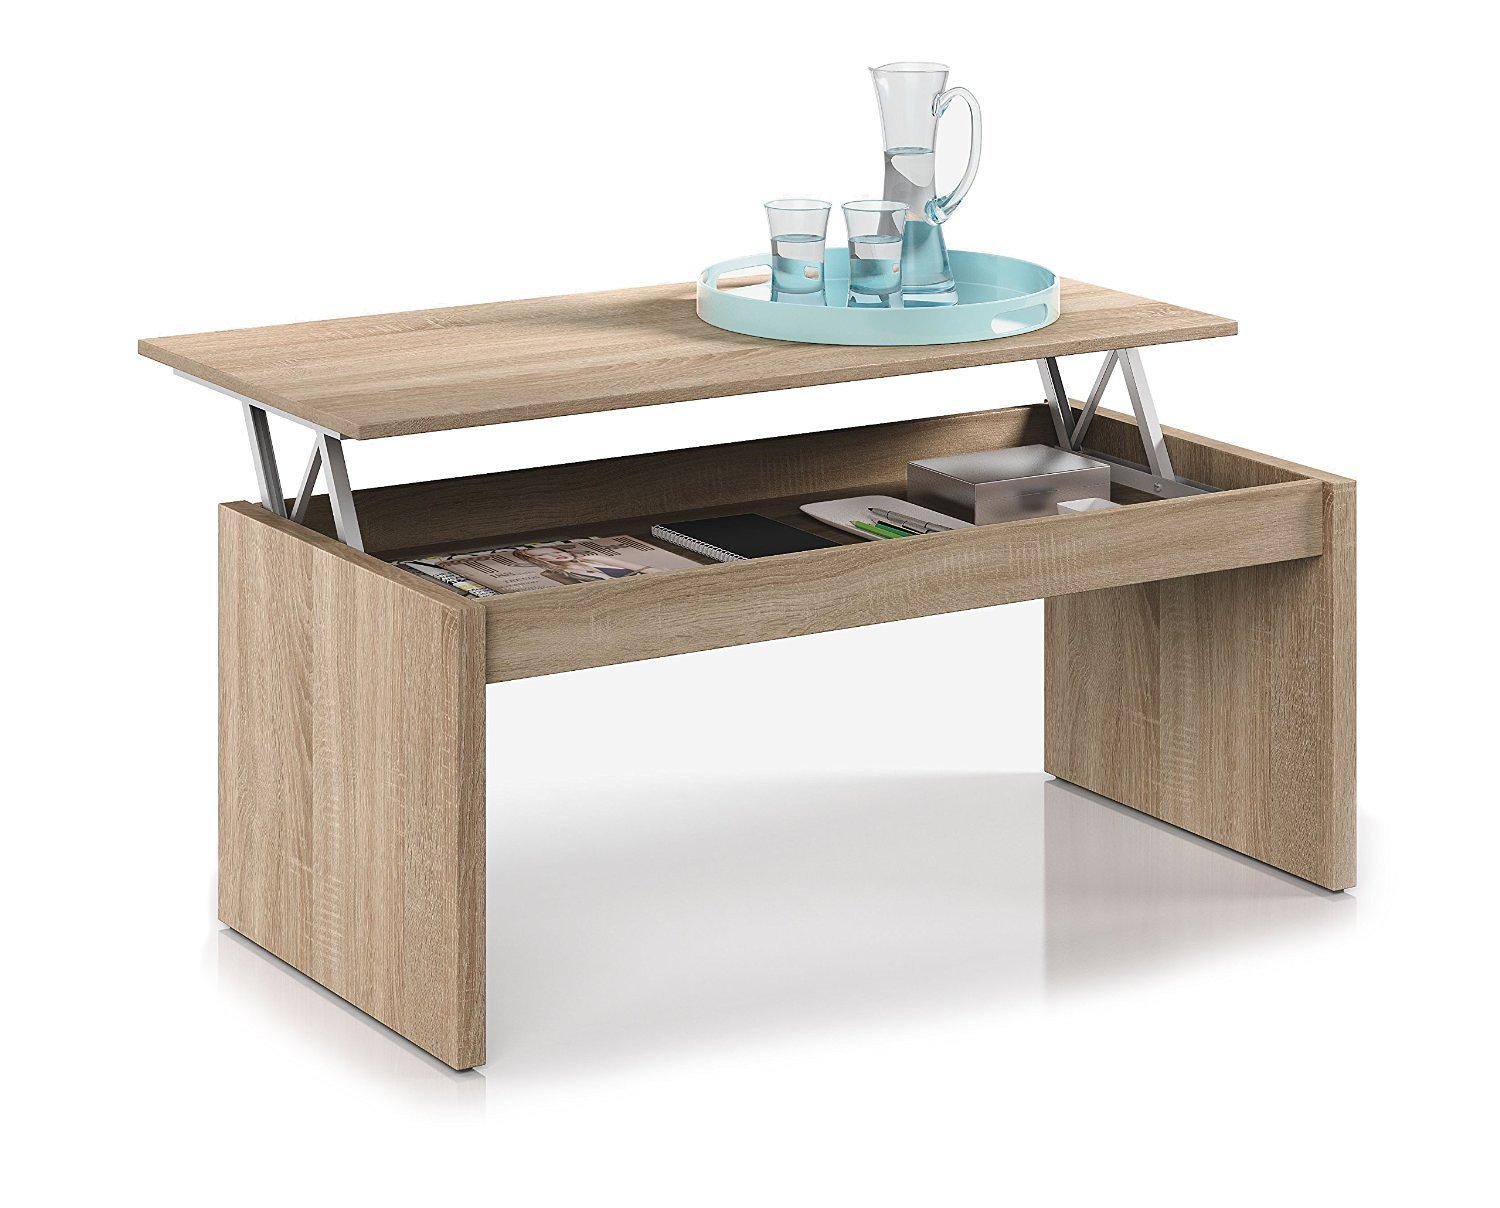 Great Habitdesign F Table Basse Chne Naturel Avec Plateau Relevable With Table Basse Bar Ikea